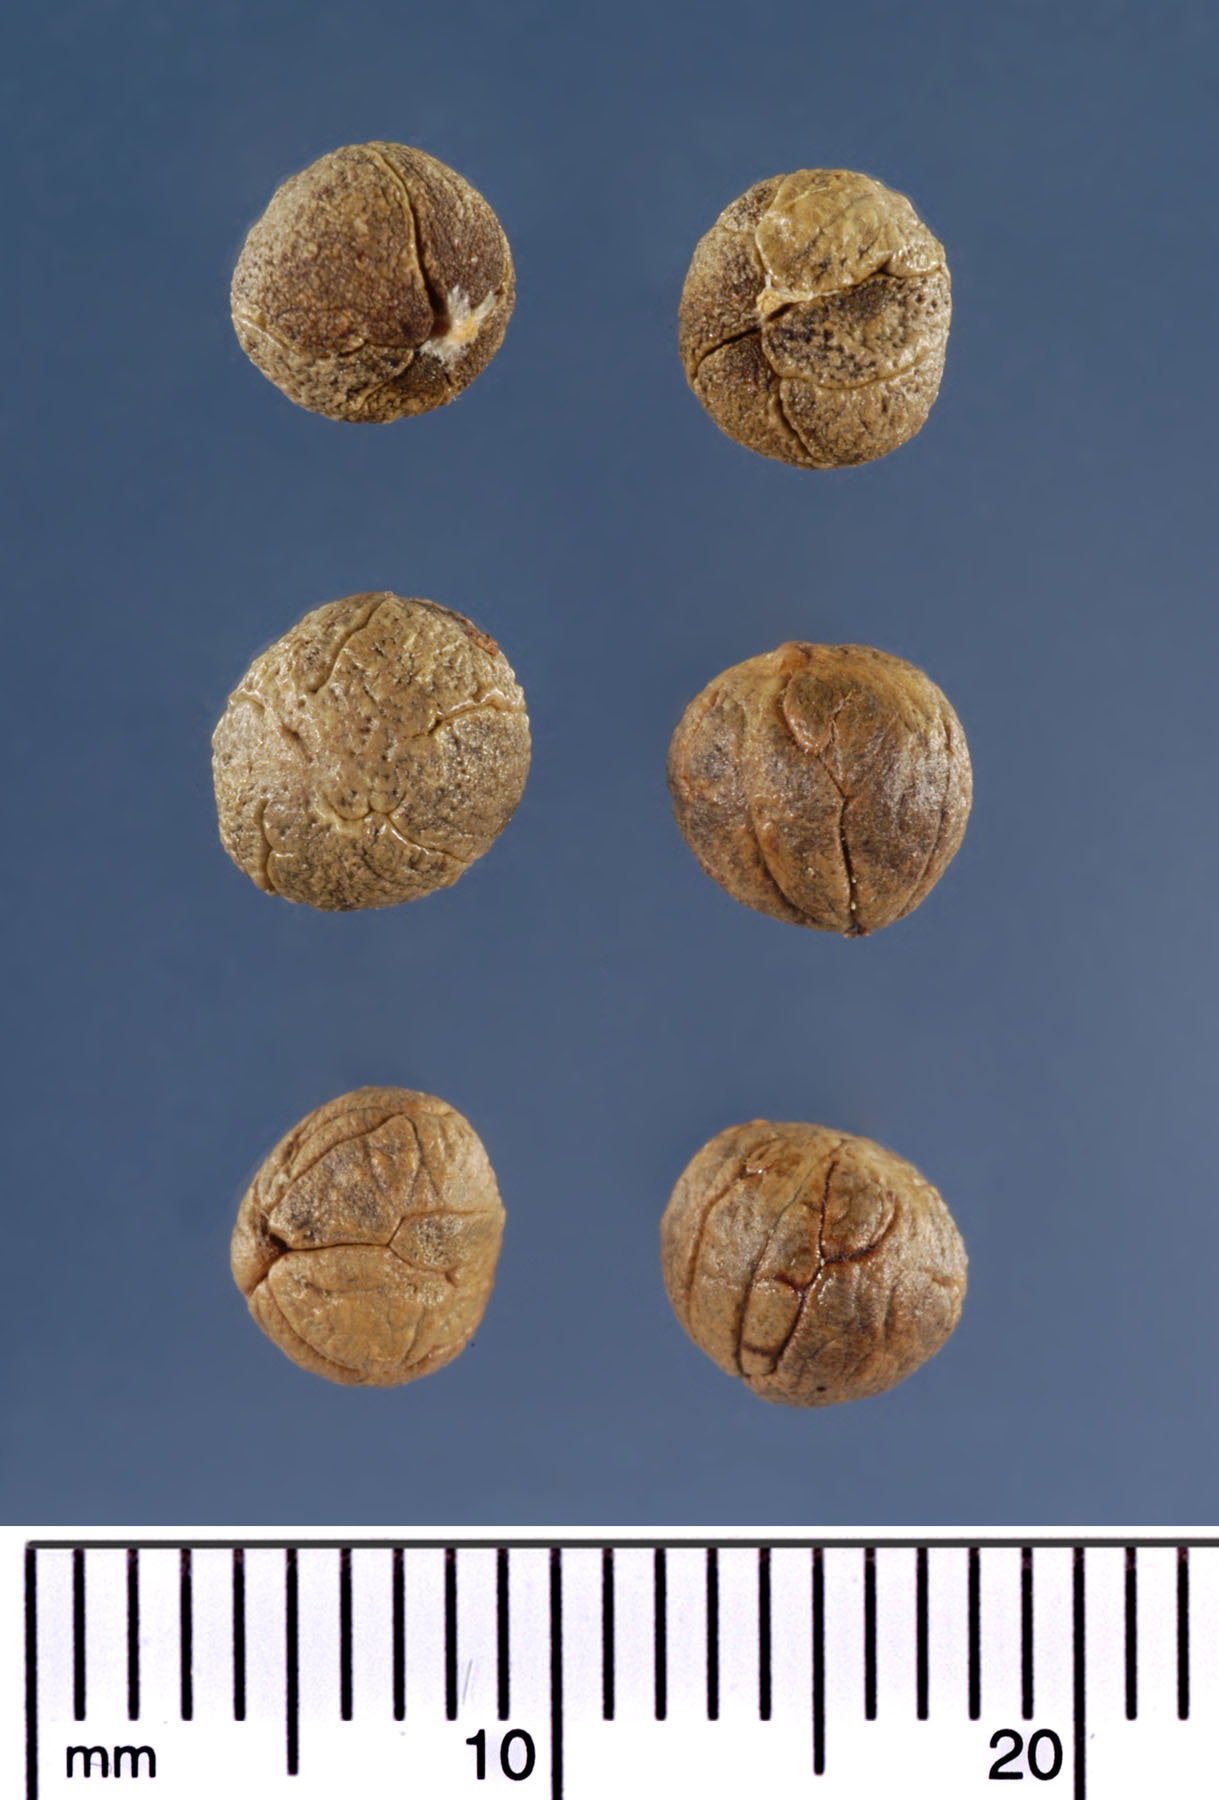 <p><em>Coccothrinax argentata</em> seeds. Photograph courtesy of Mariana P. Beckman, DPI</p>